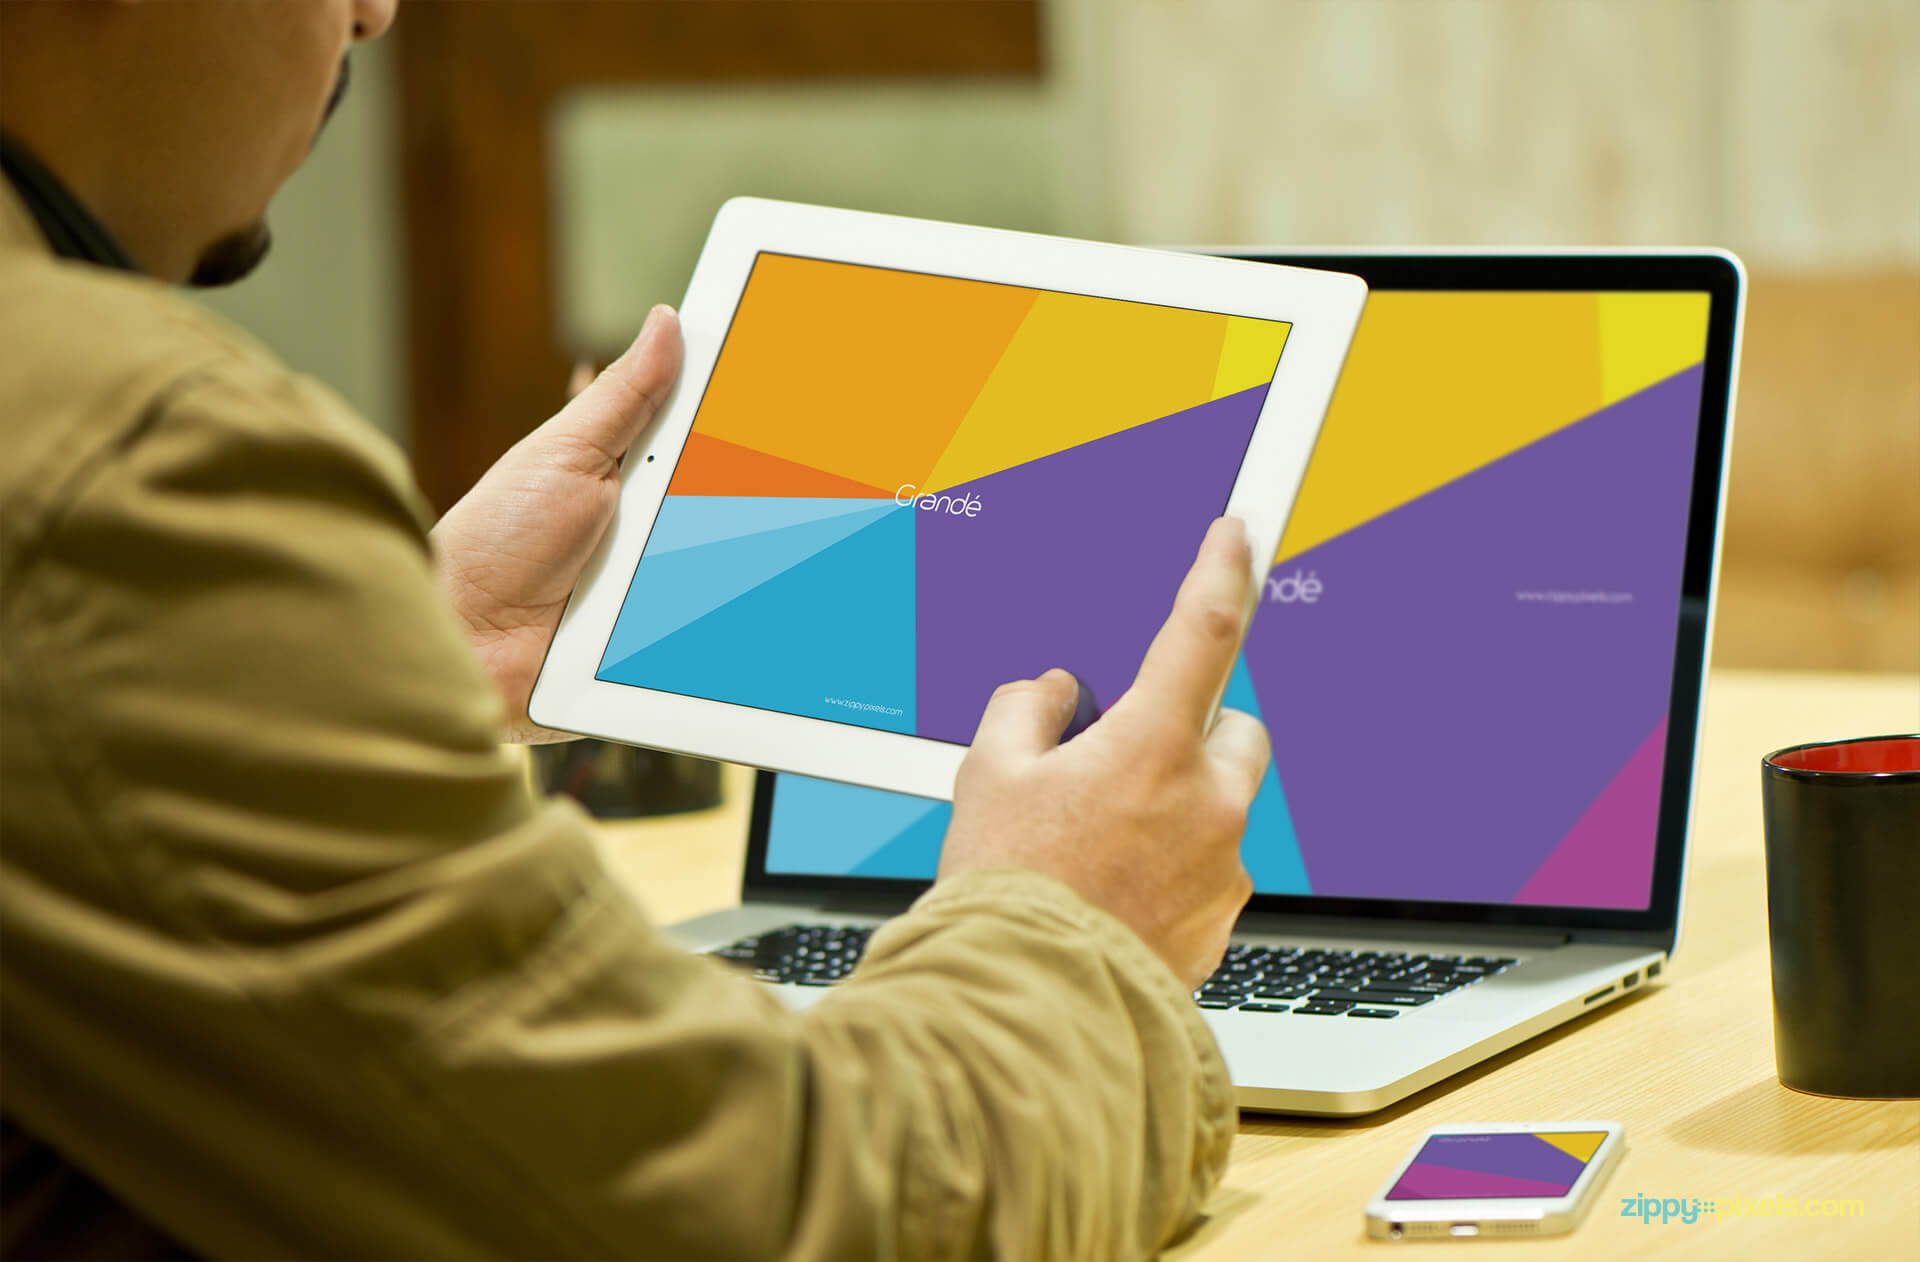 Device Mockup of a Person holding iPad and Macbook Pro in Background